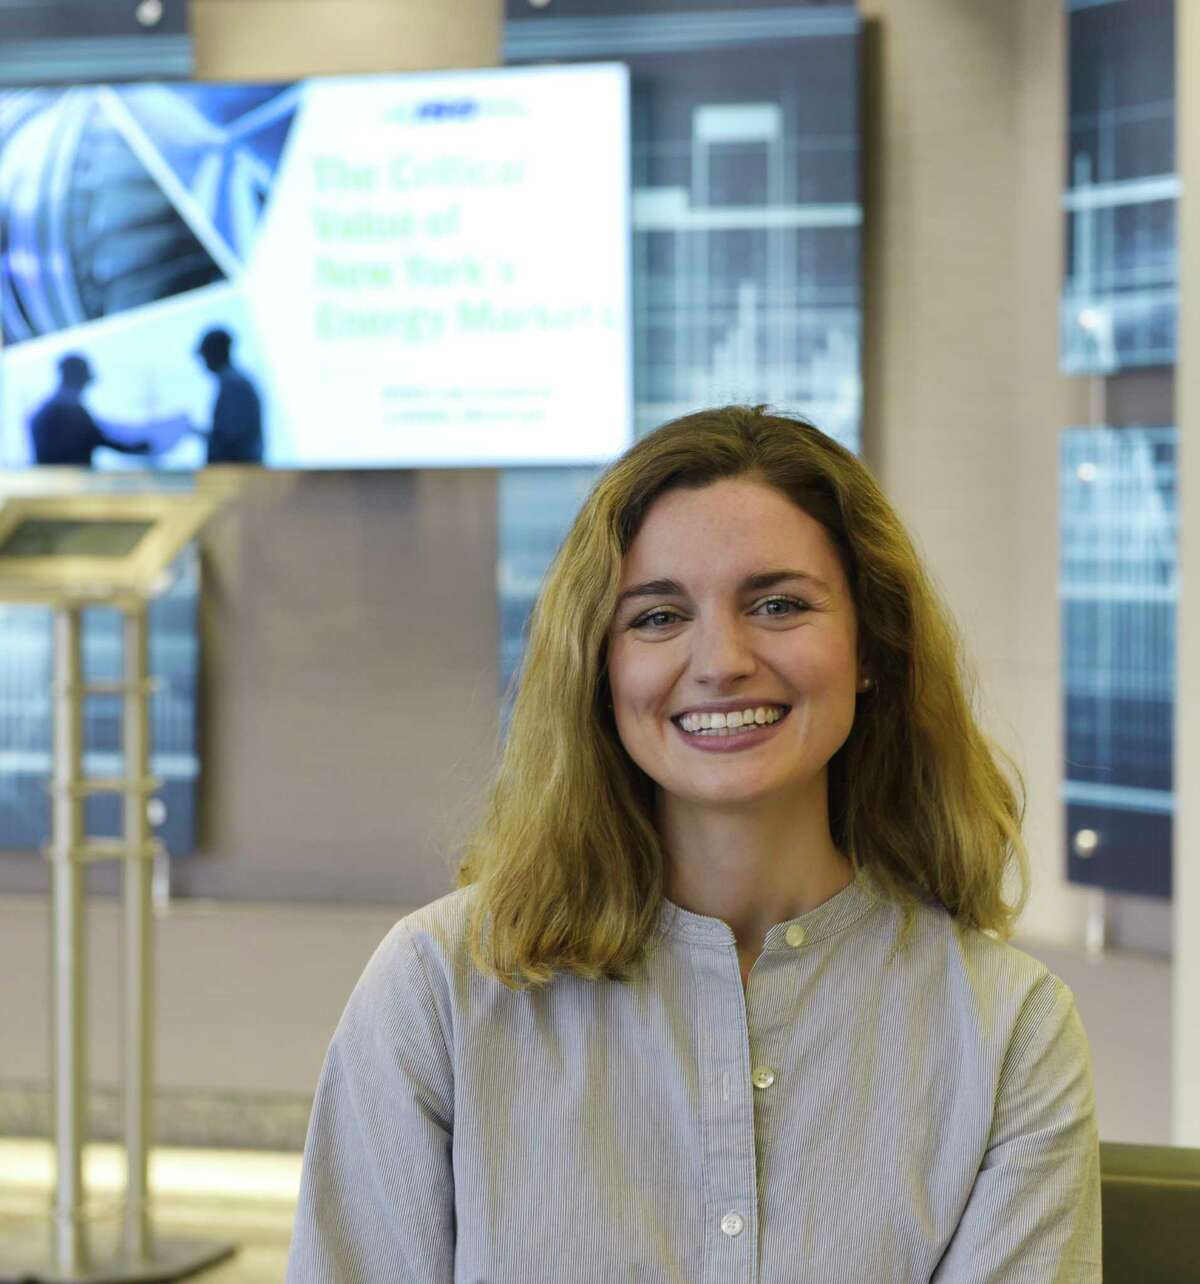 Meghan Castellano, a installed capacity market operations engineer at NYISO, poses for a photo at NYISO on Tuesday, Jan. 28, 2020, in Rensselaer, N.Y. (Paul Buckowski/Times Union)